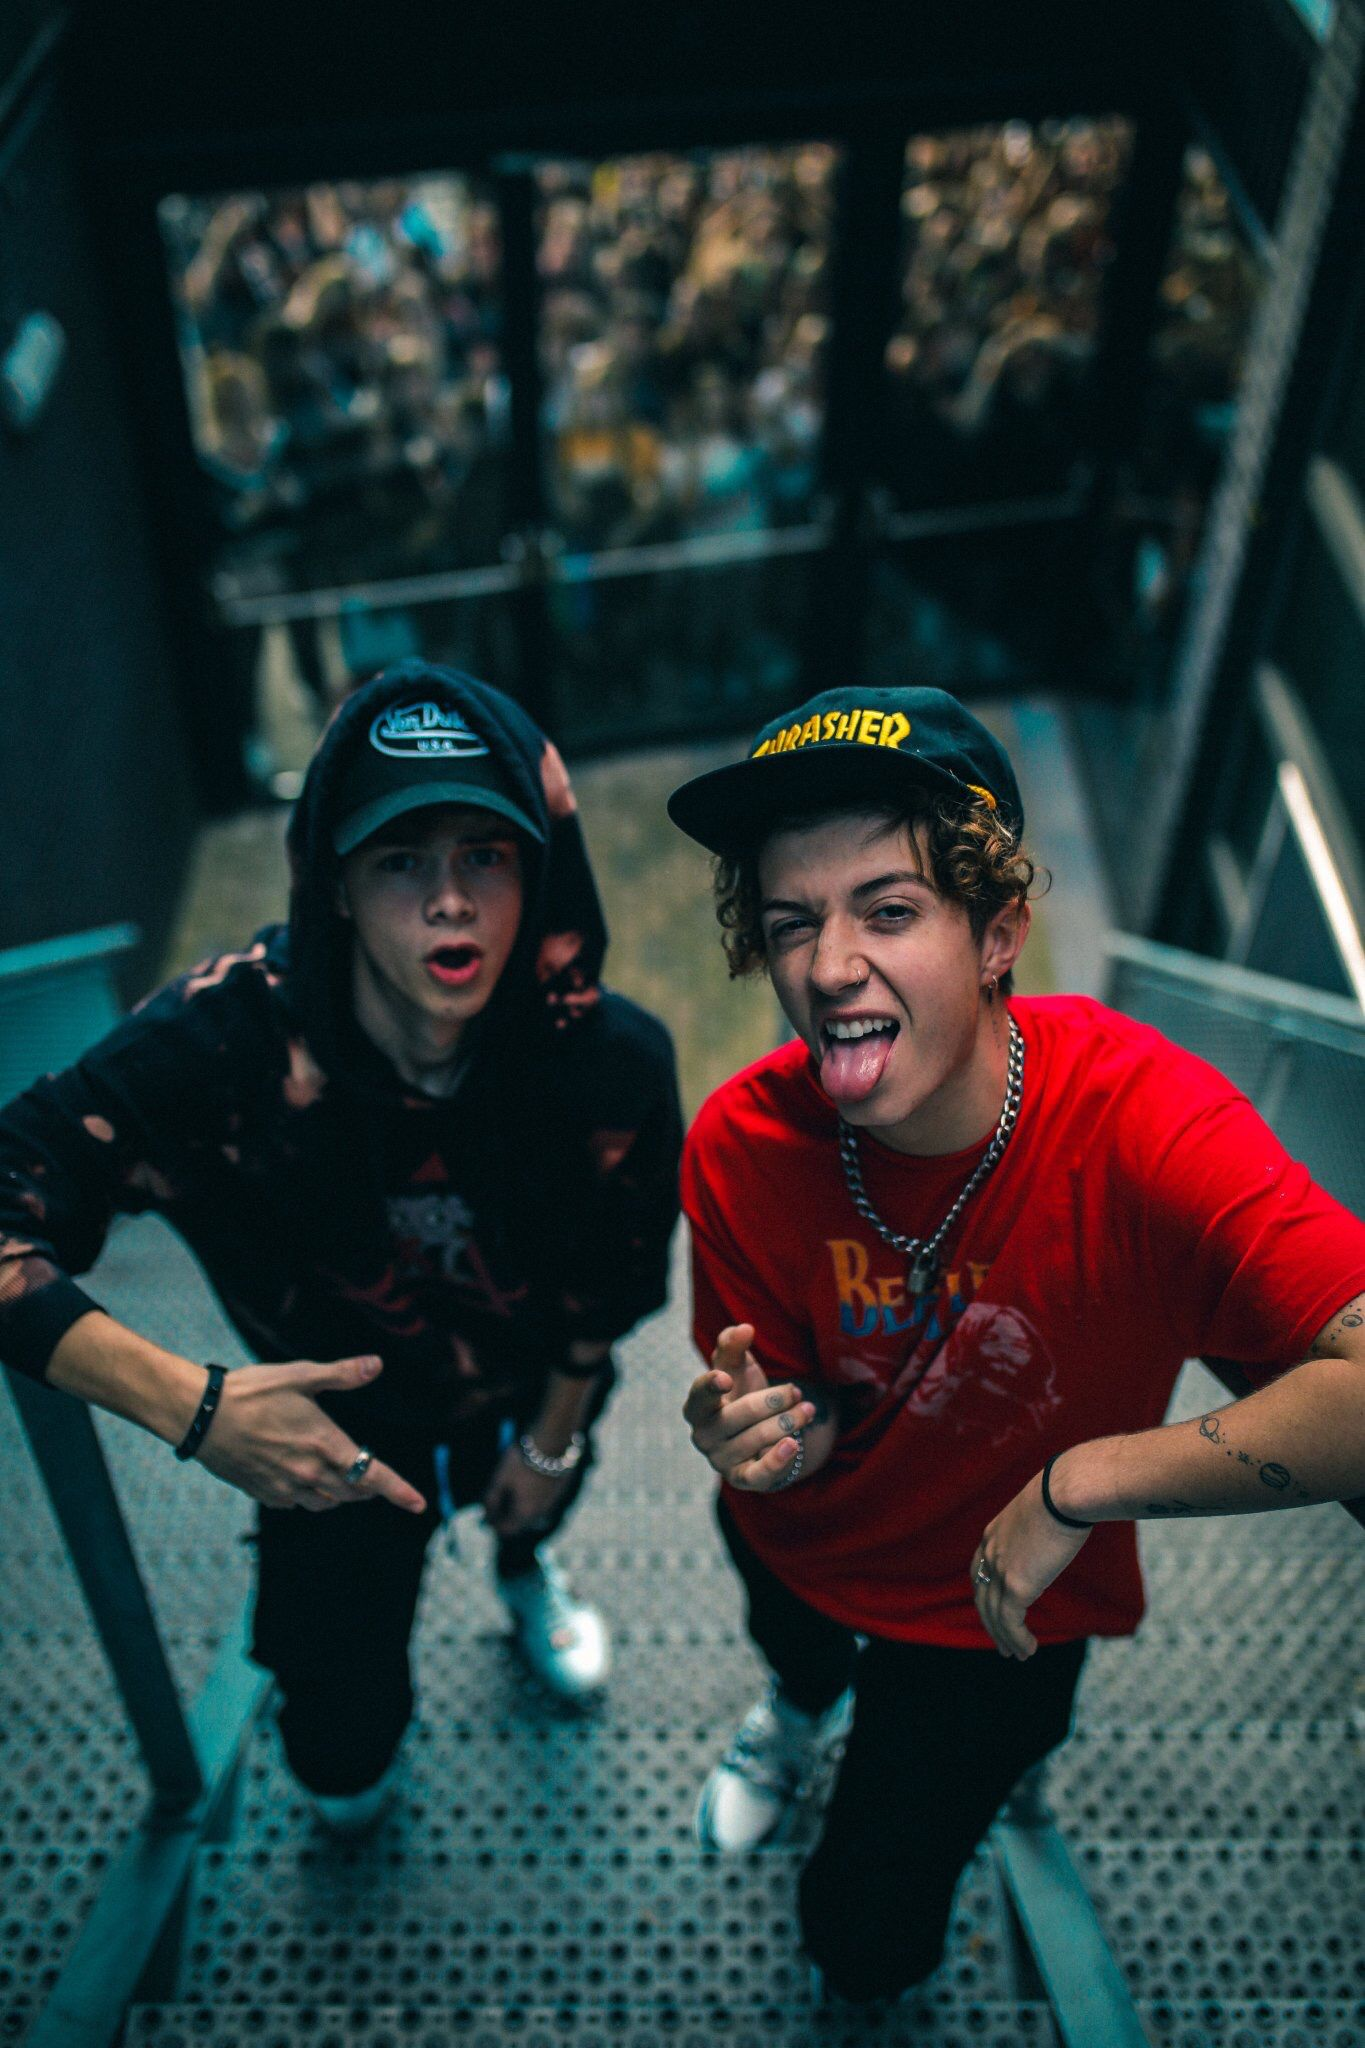 Pin by Ashley on why don't we | Jack avery, Corbyn besson, Zach herron